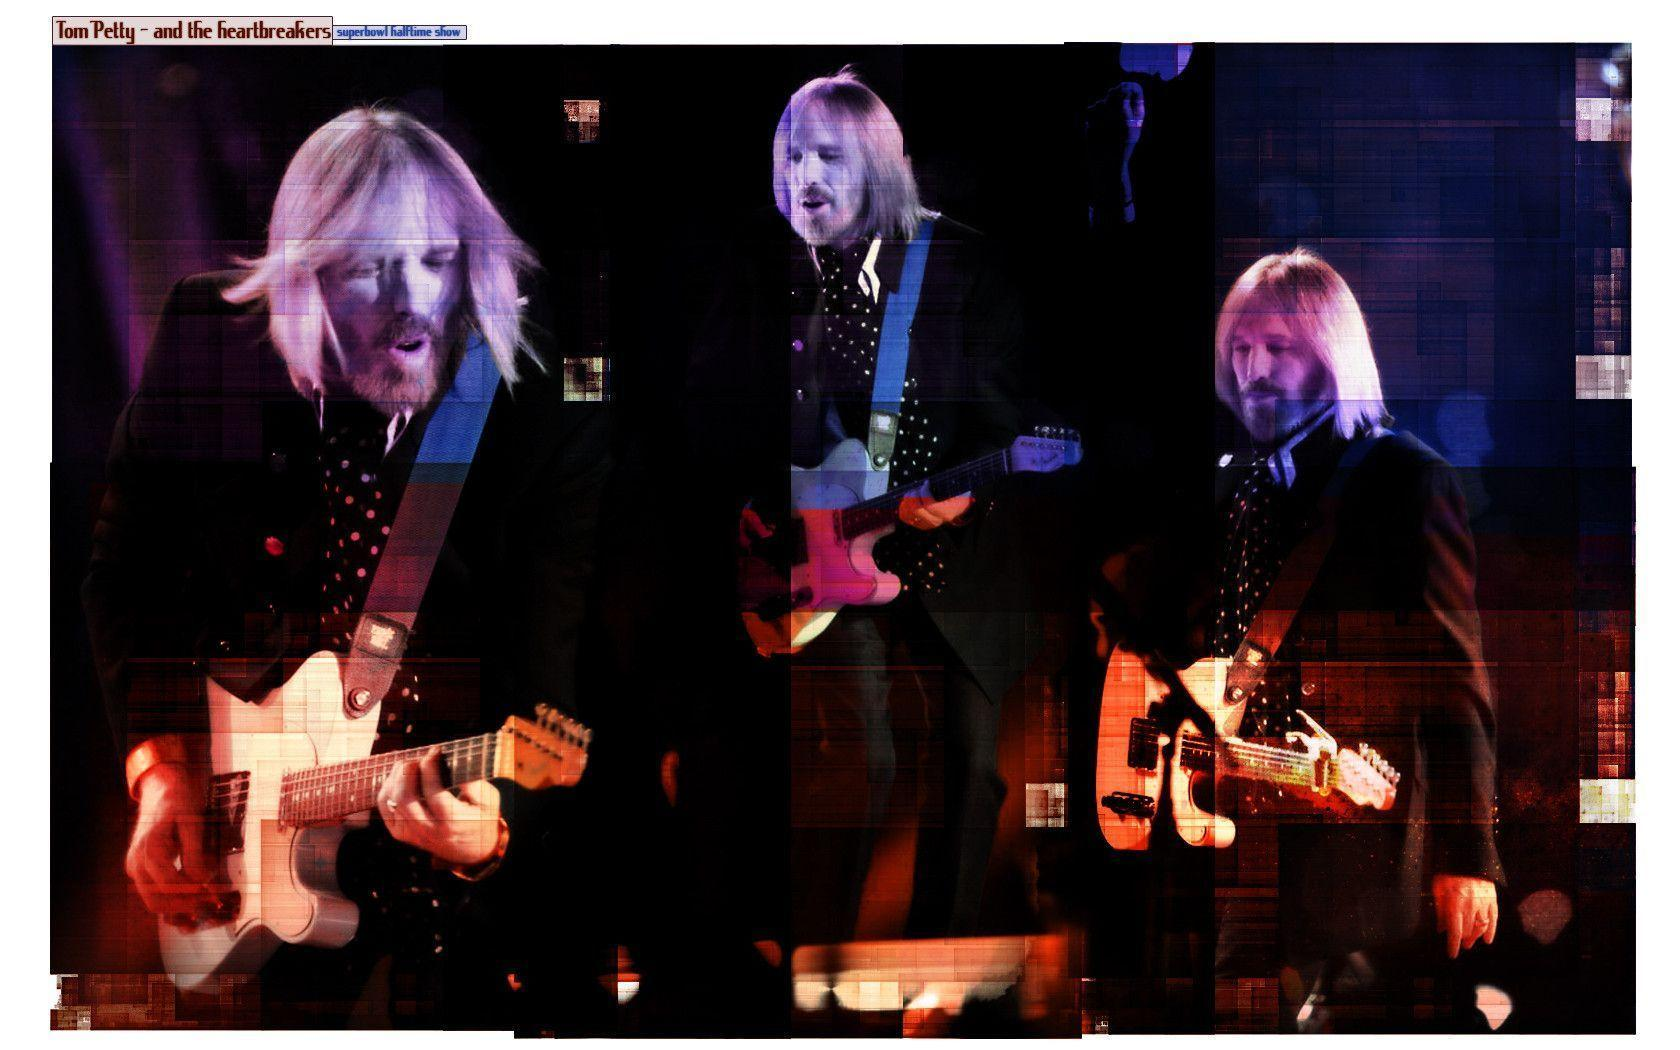 Tom Petty Wallpapers 1680x1050